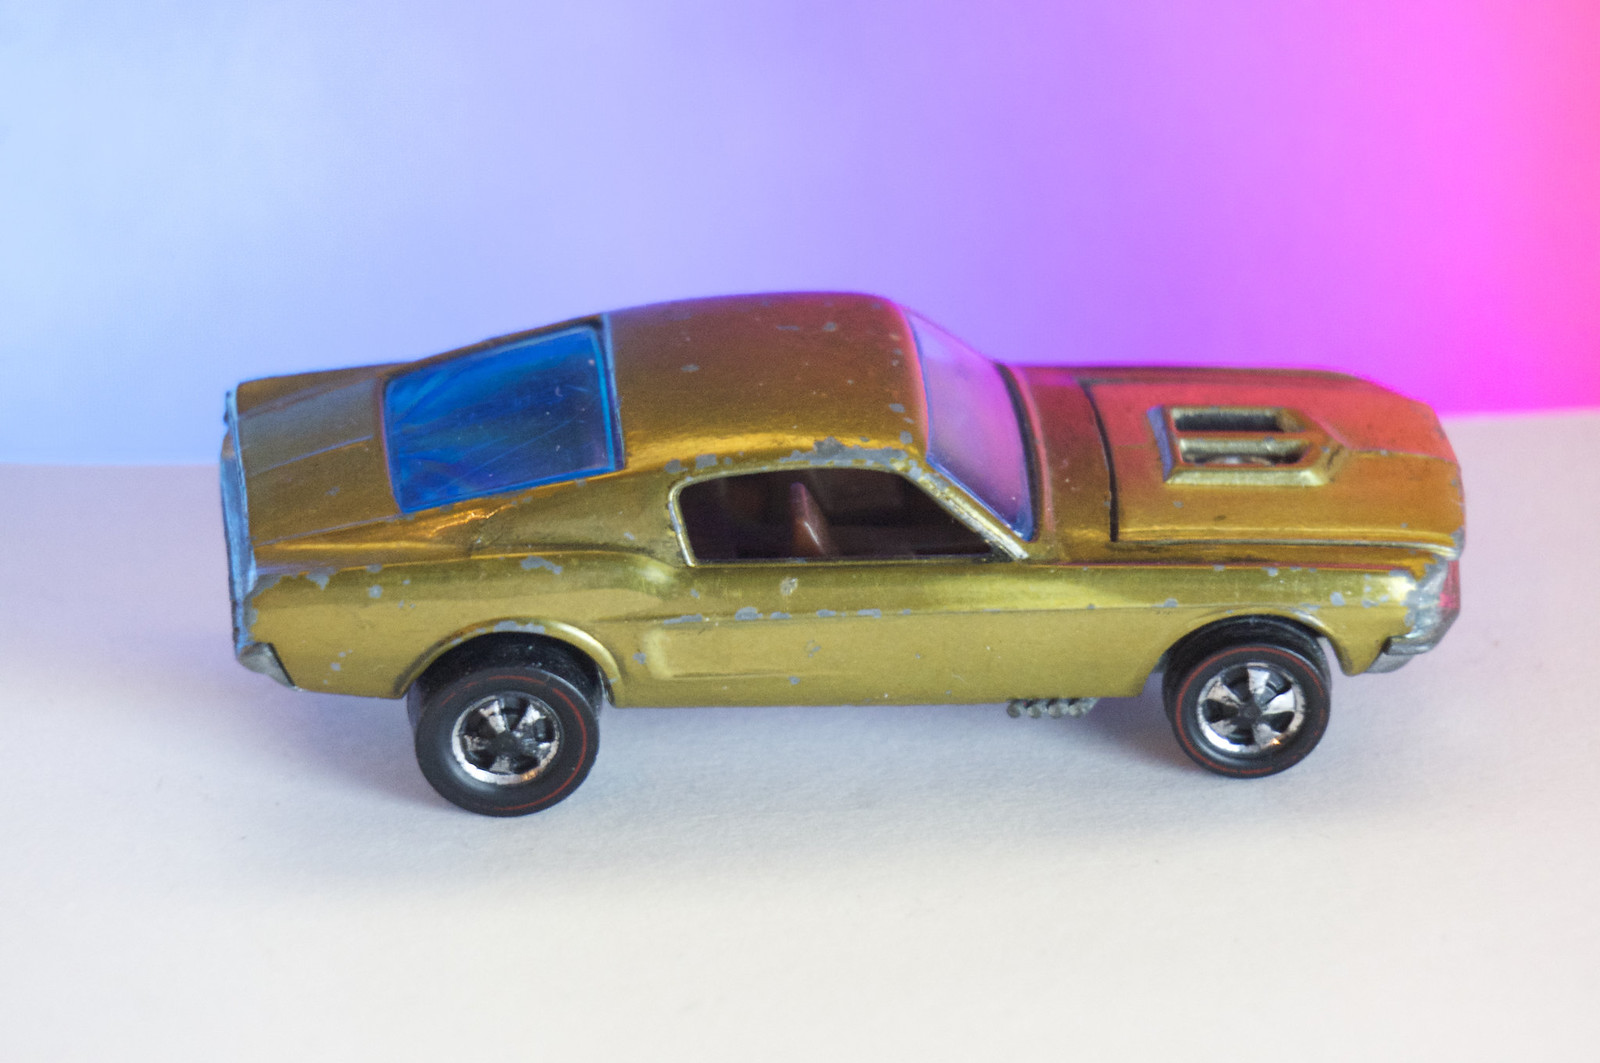 Hot Wheels Redline Early Production Gold Custom Mustang Open Hood Scoop HK